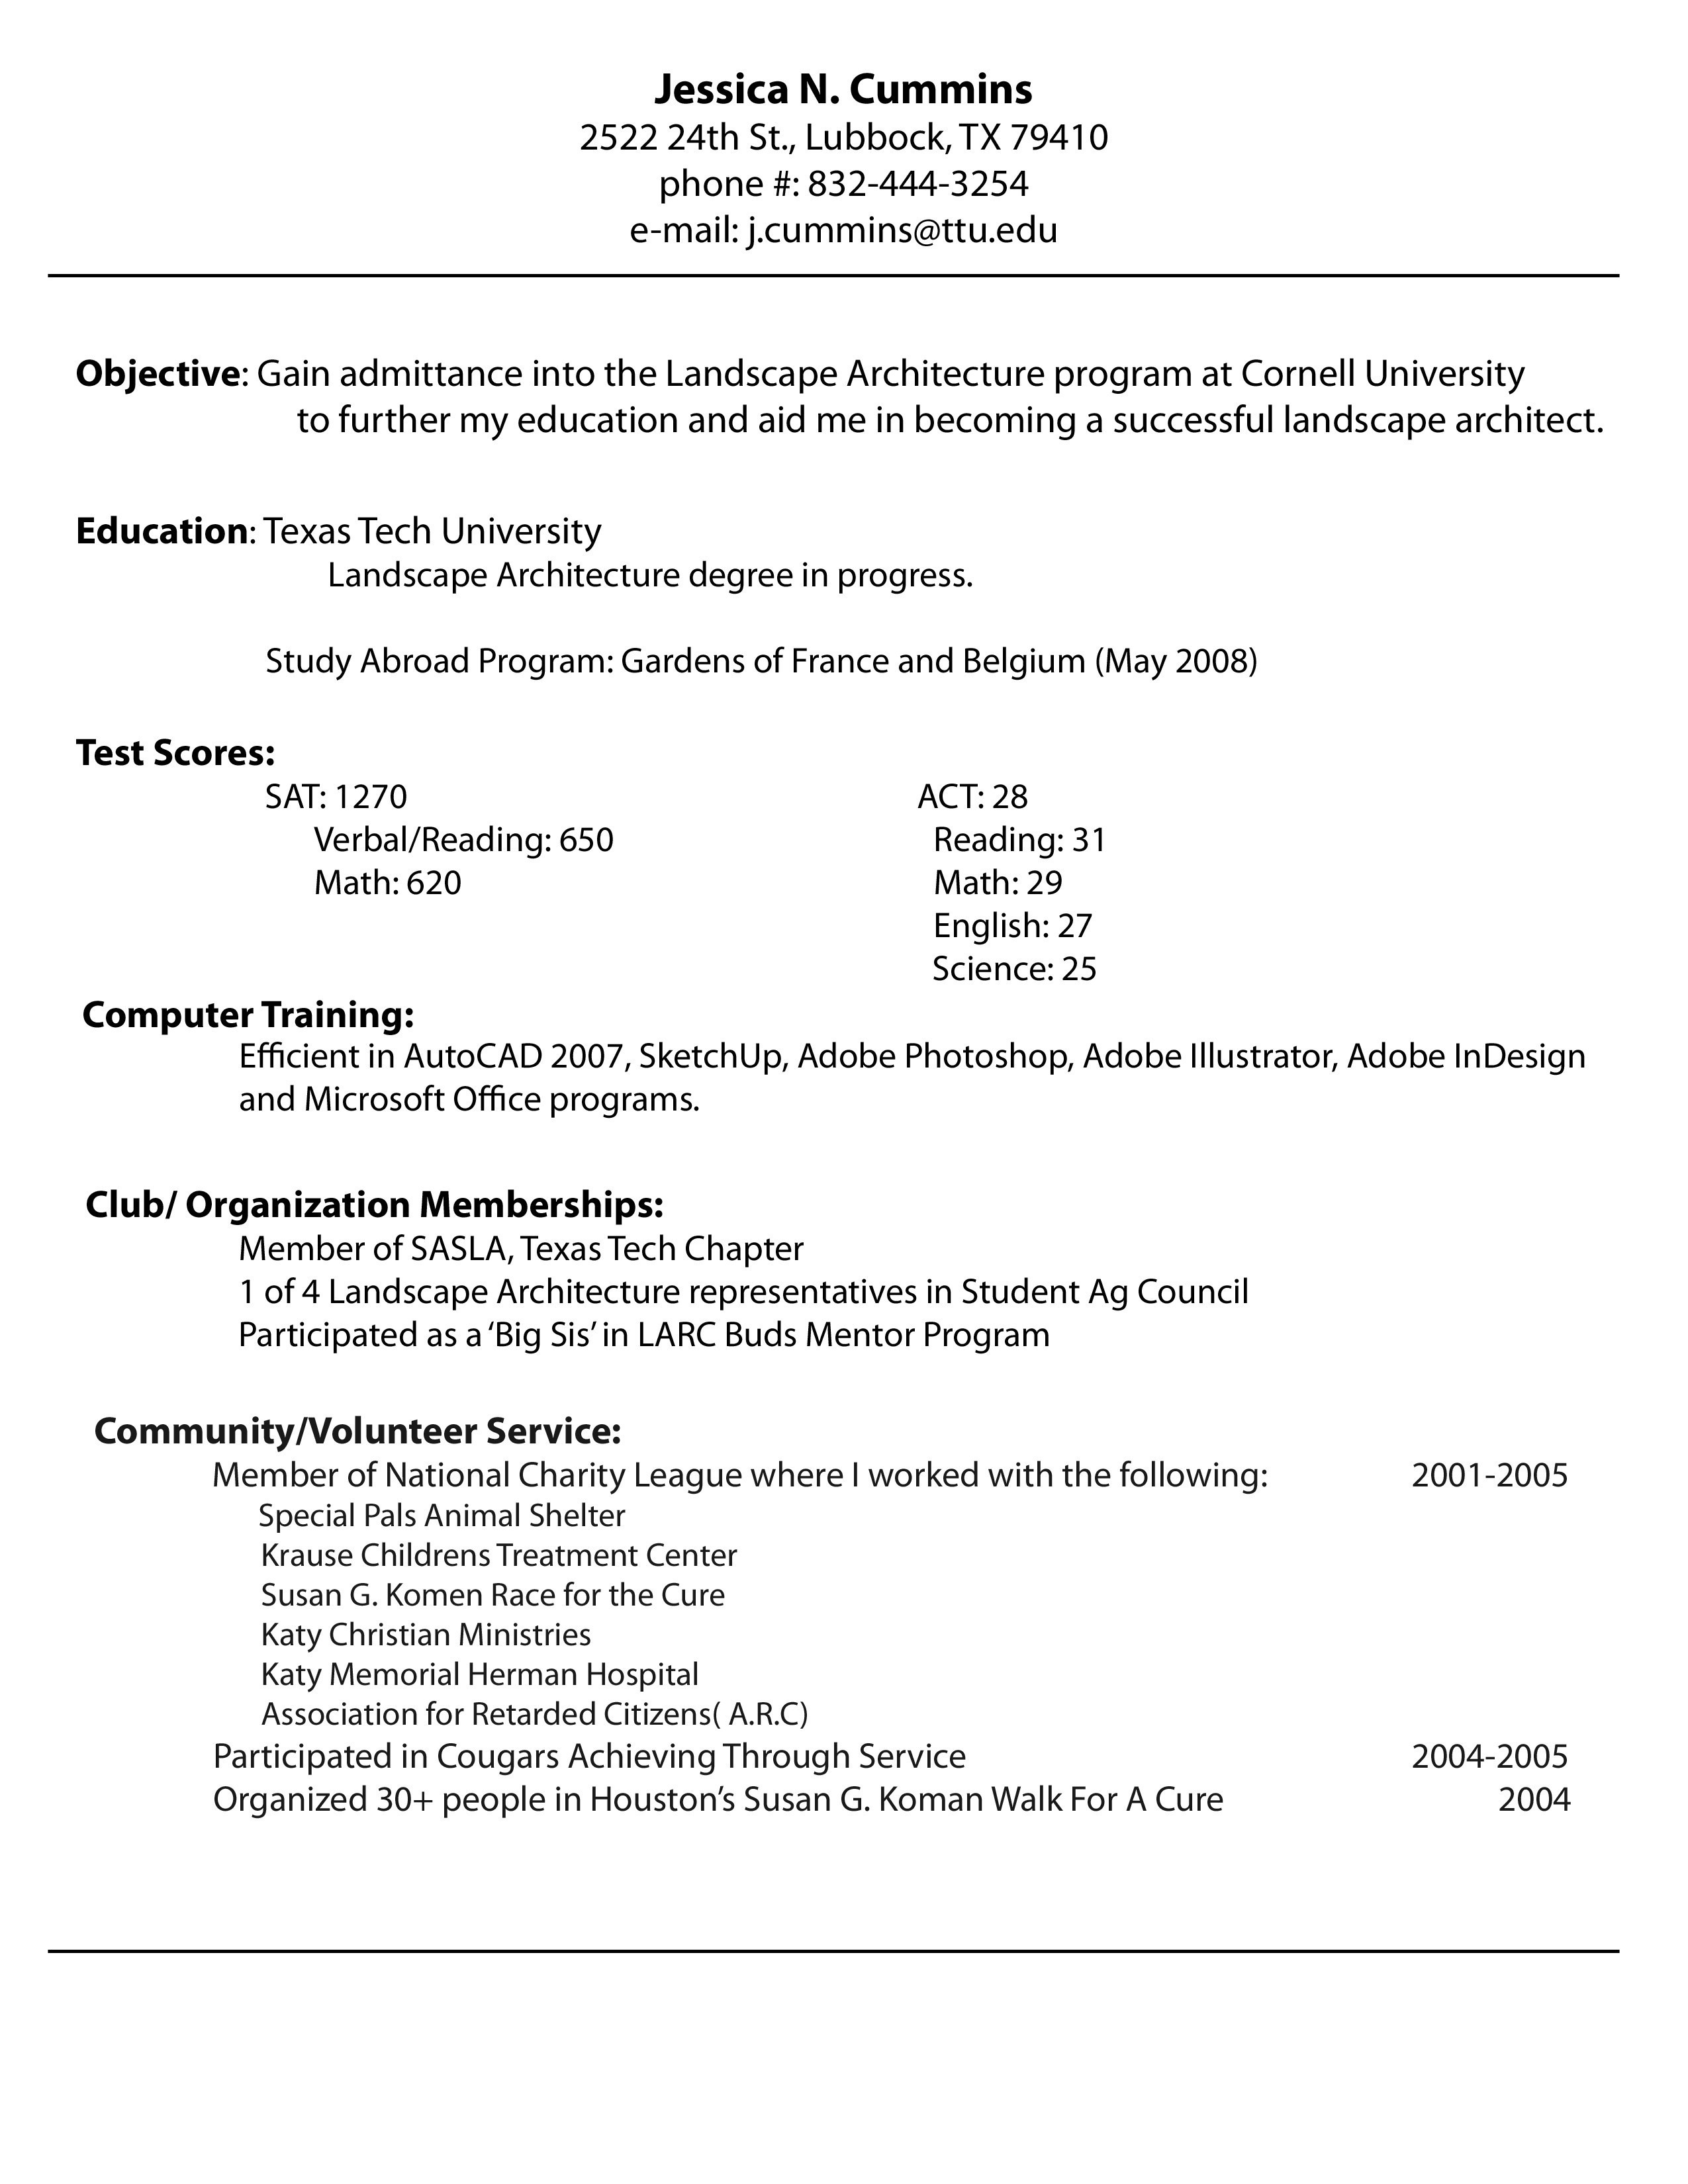 cummins jobs resume example-Cummins Jobs Resume Unique How to Create A Job Resume New where Can I A Resume Yeniscale Pour 20-k